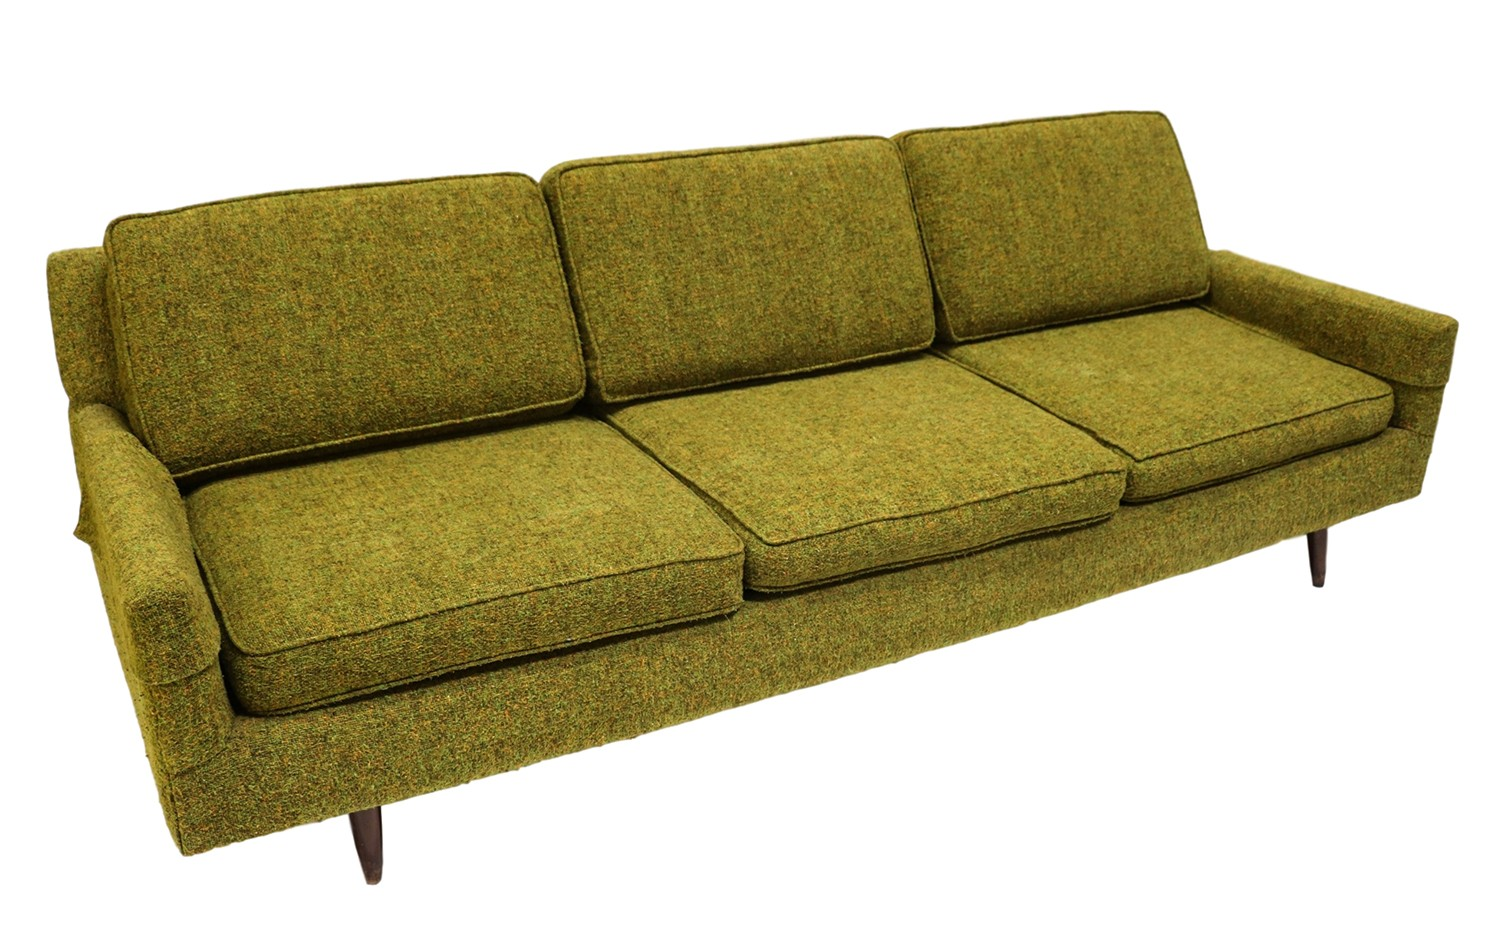 mid century modern green upholstered sofa. Black Bedroom Furniture Sets. Home Design Ideas